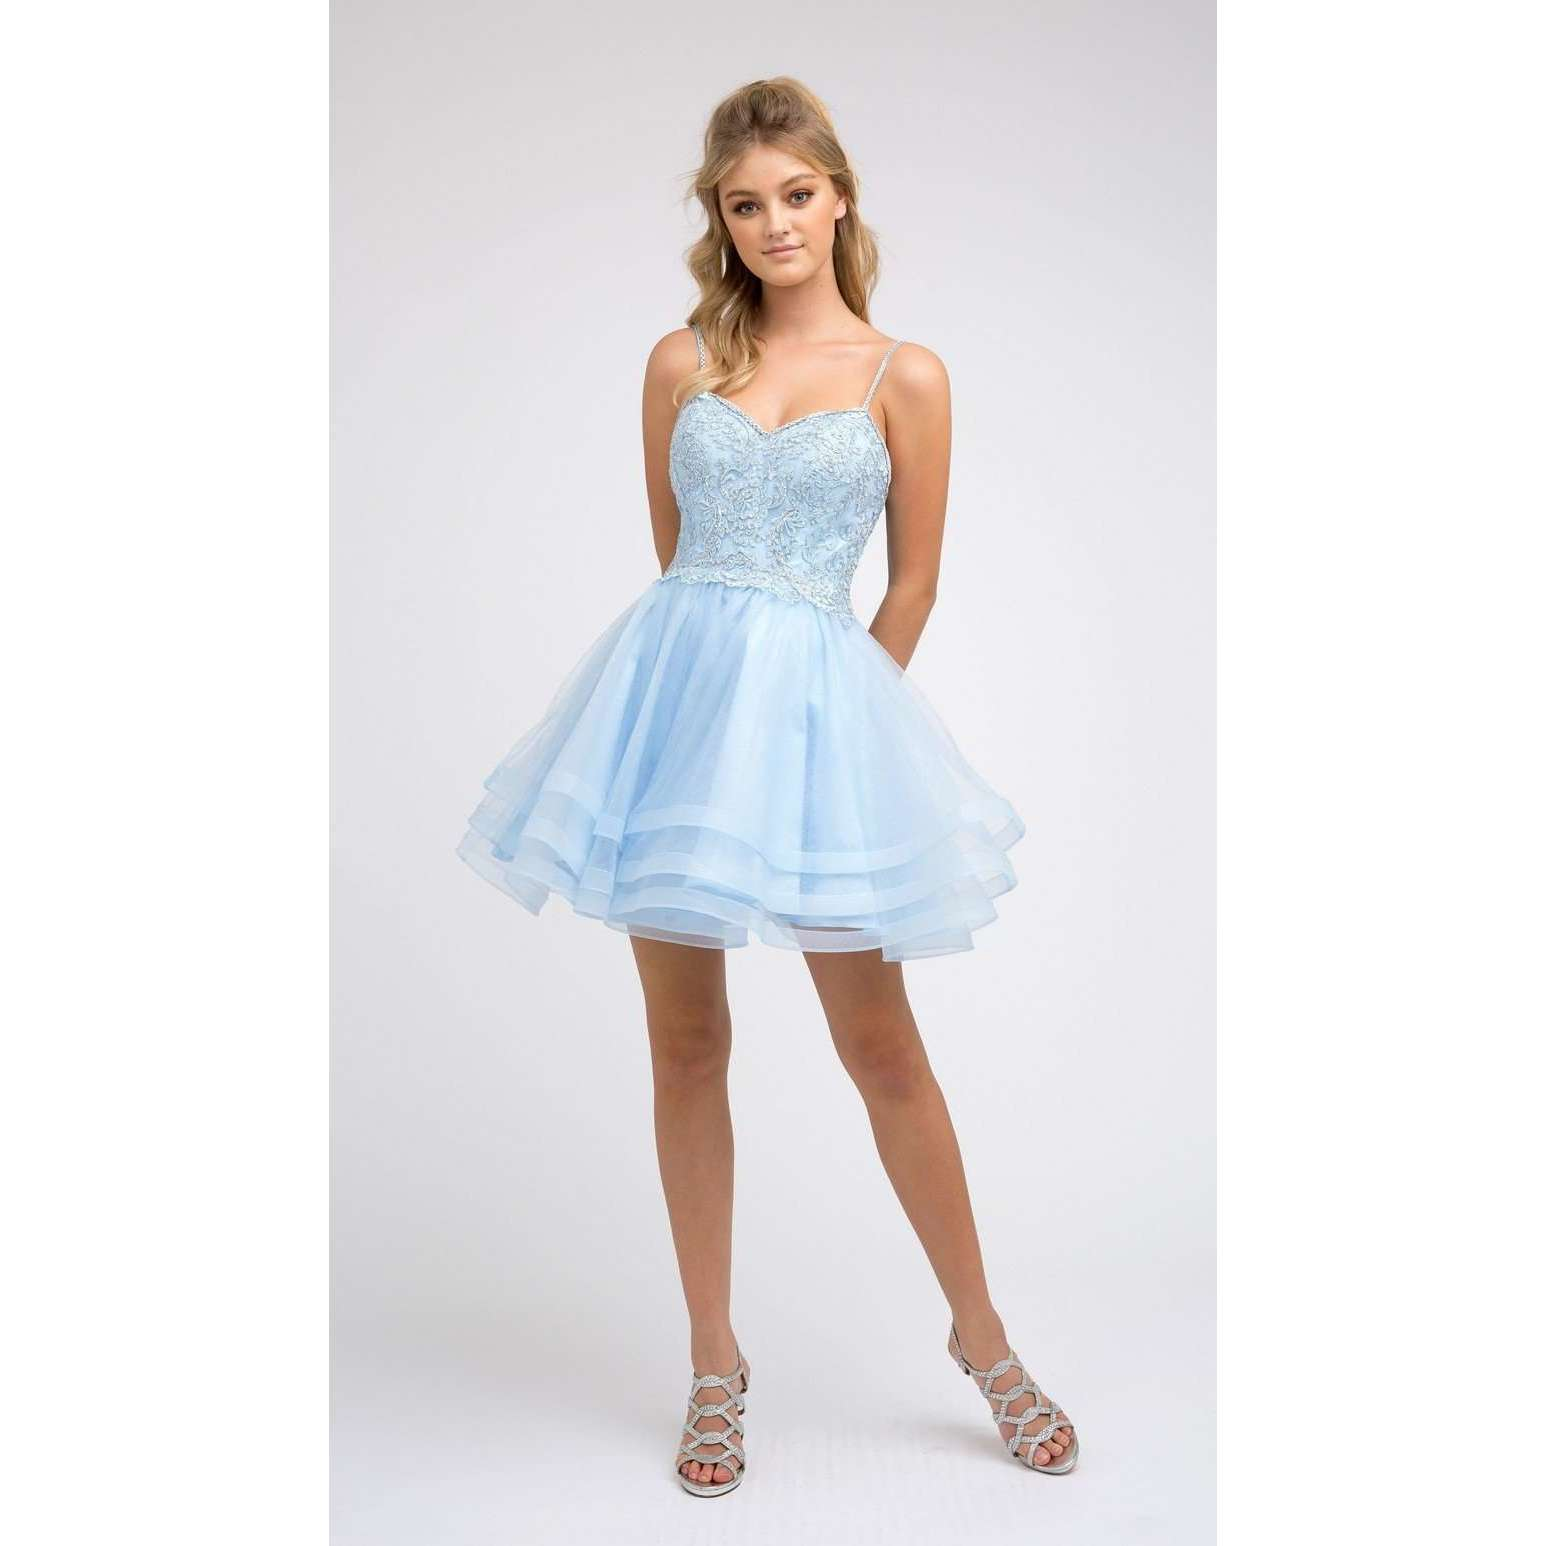 Embroidered Bodice Layered Skirt Homecoming Dress 849 - Julietdresses